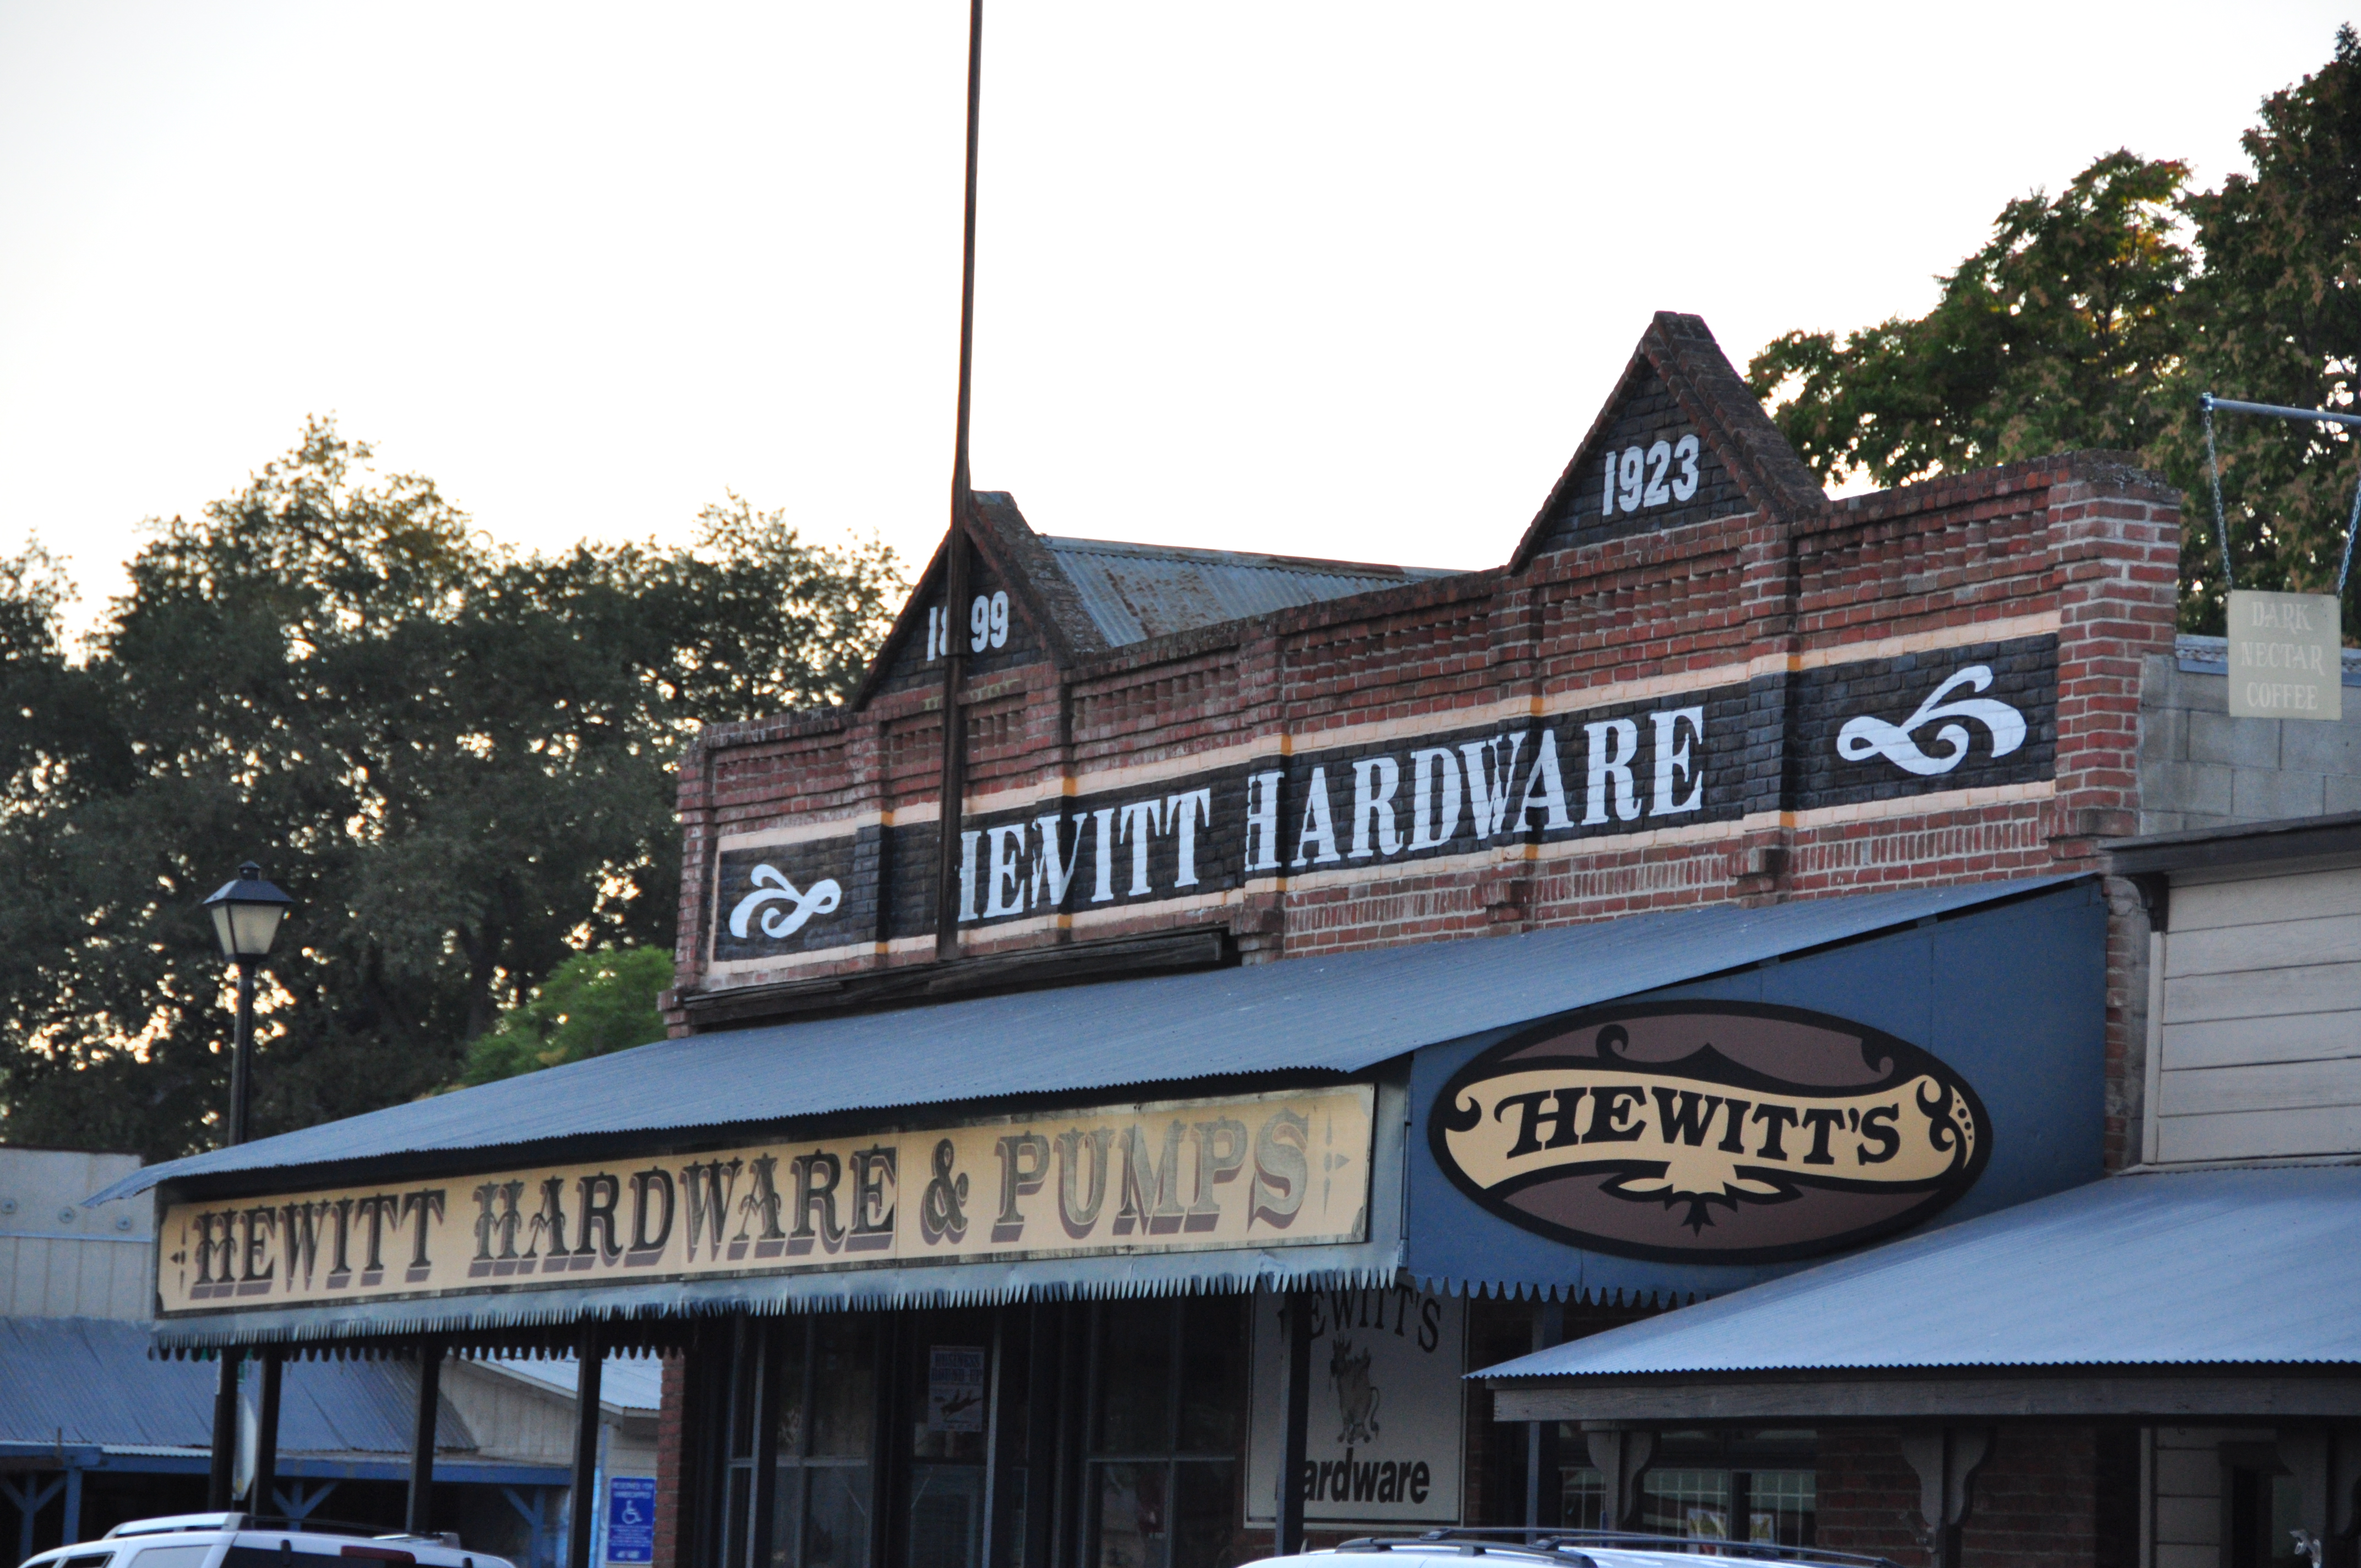 Historic Hewitt's Hardware